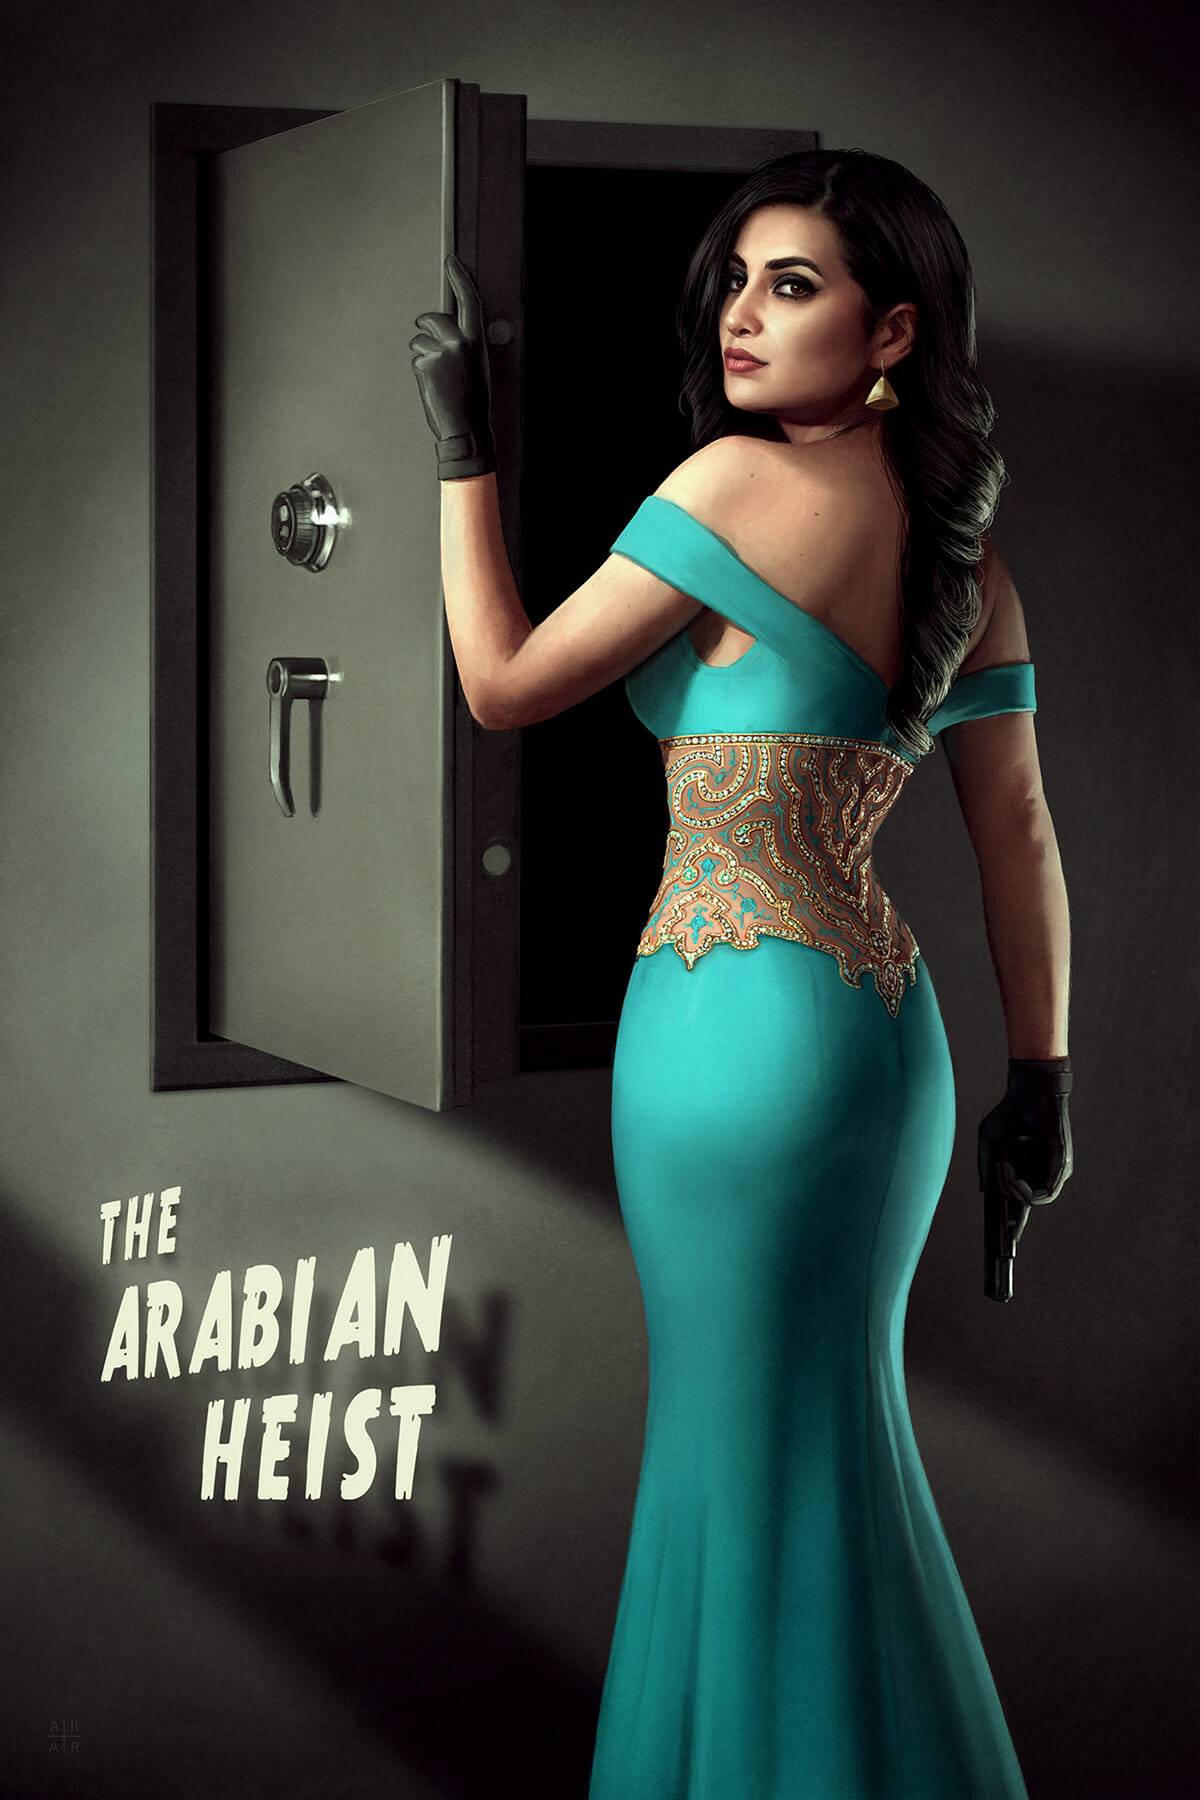 The Arabian Heist